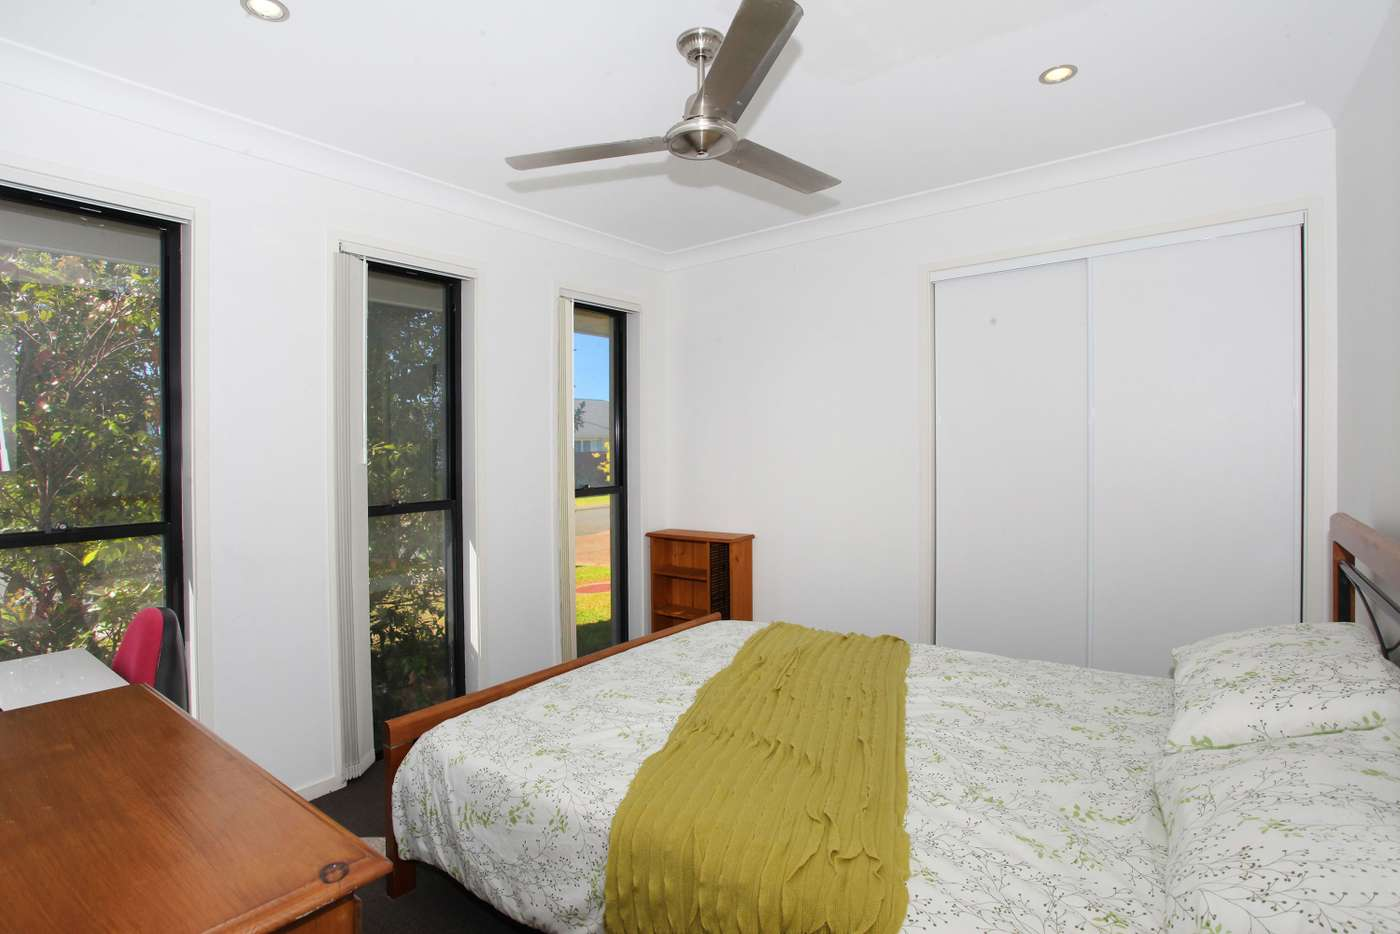 Main view of Homely house listing, 29 Amberjack Street, Mountain Creek QLD 4557